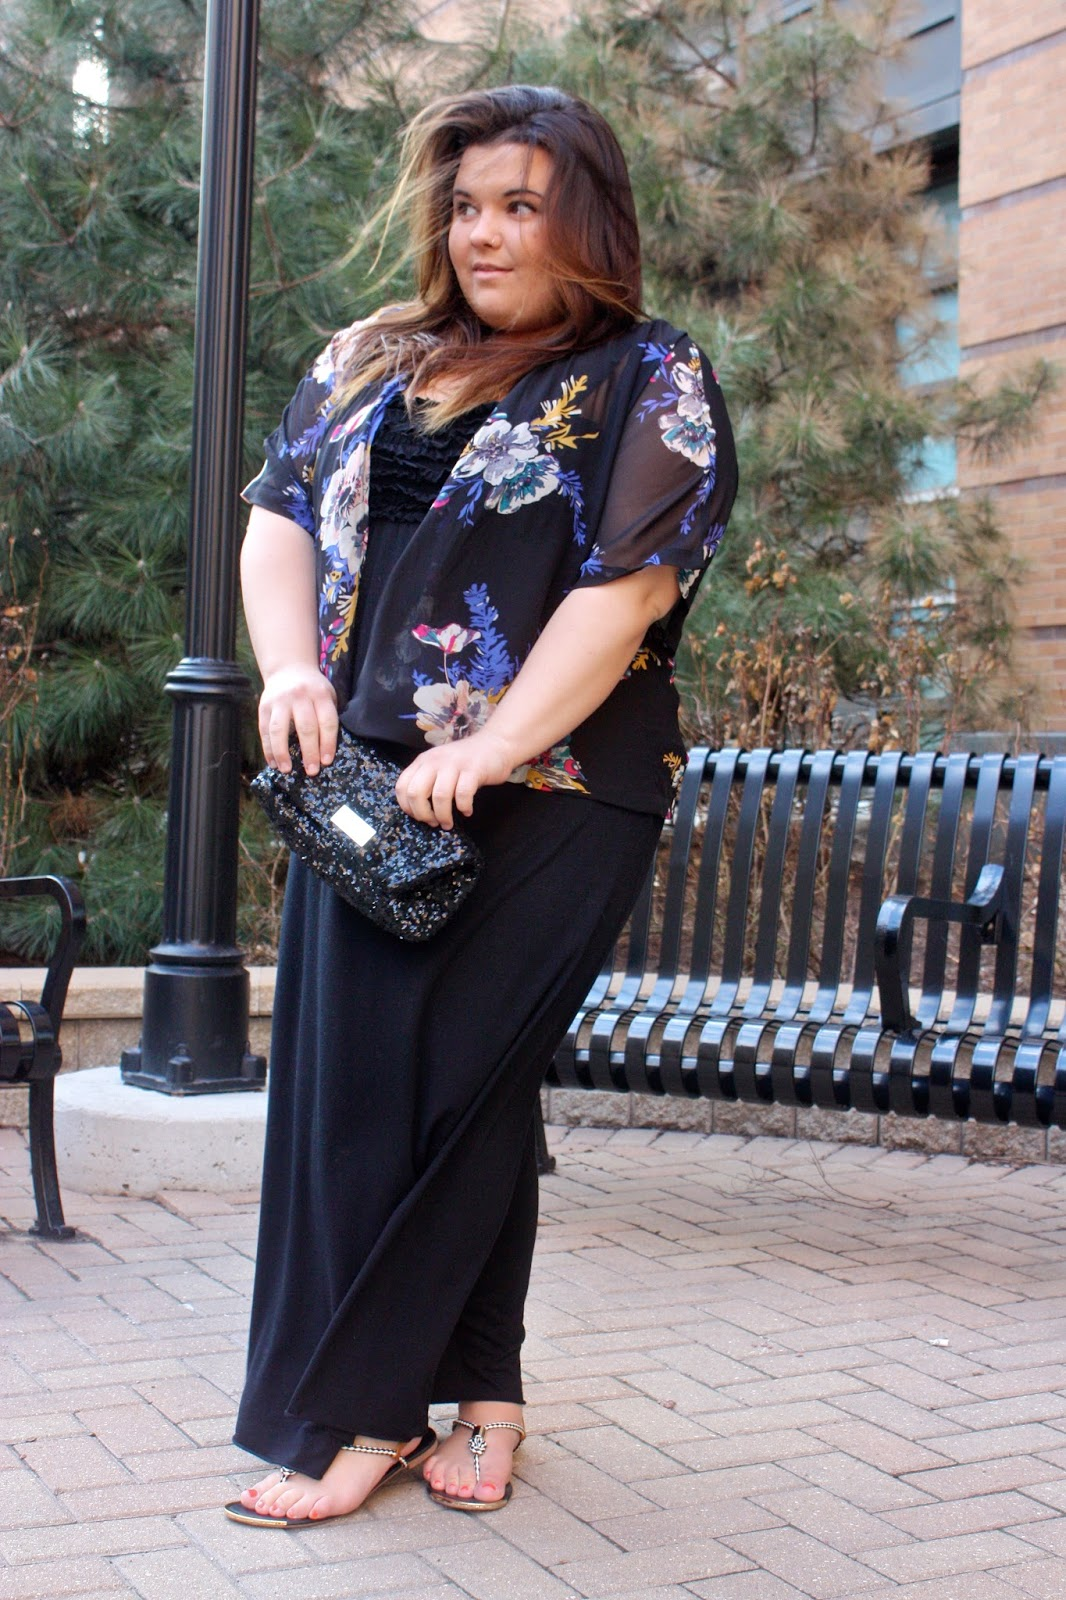 kimono, japanese fashion, forever 21, natalie craig, natalie in the city, plus size fashion, plus size fashion blogger, maxi dress, summer fashion, spring fashion 2014, sequin clutch, victorias seceret